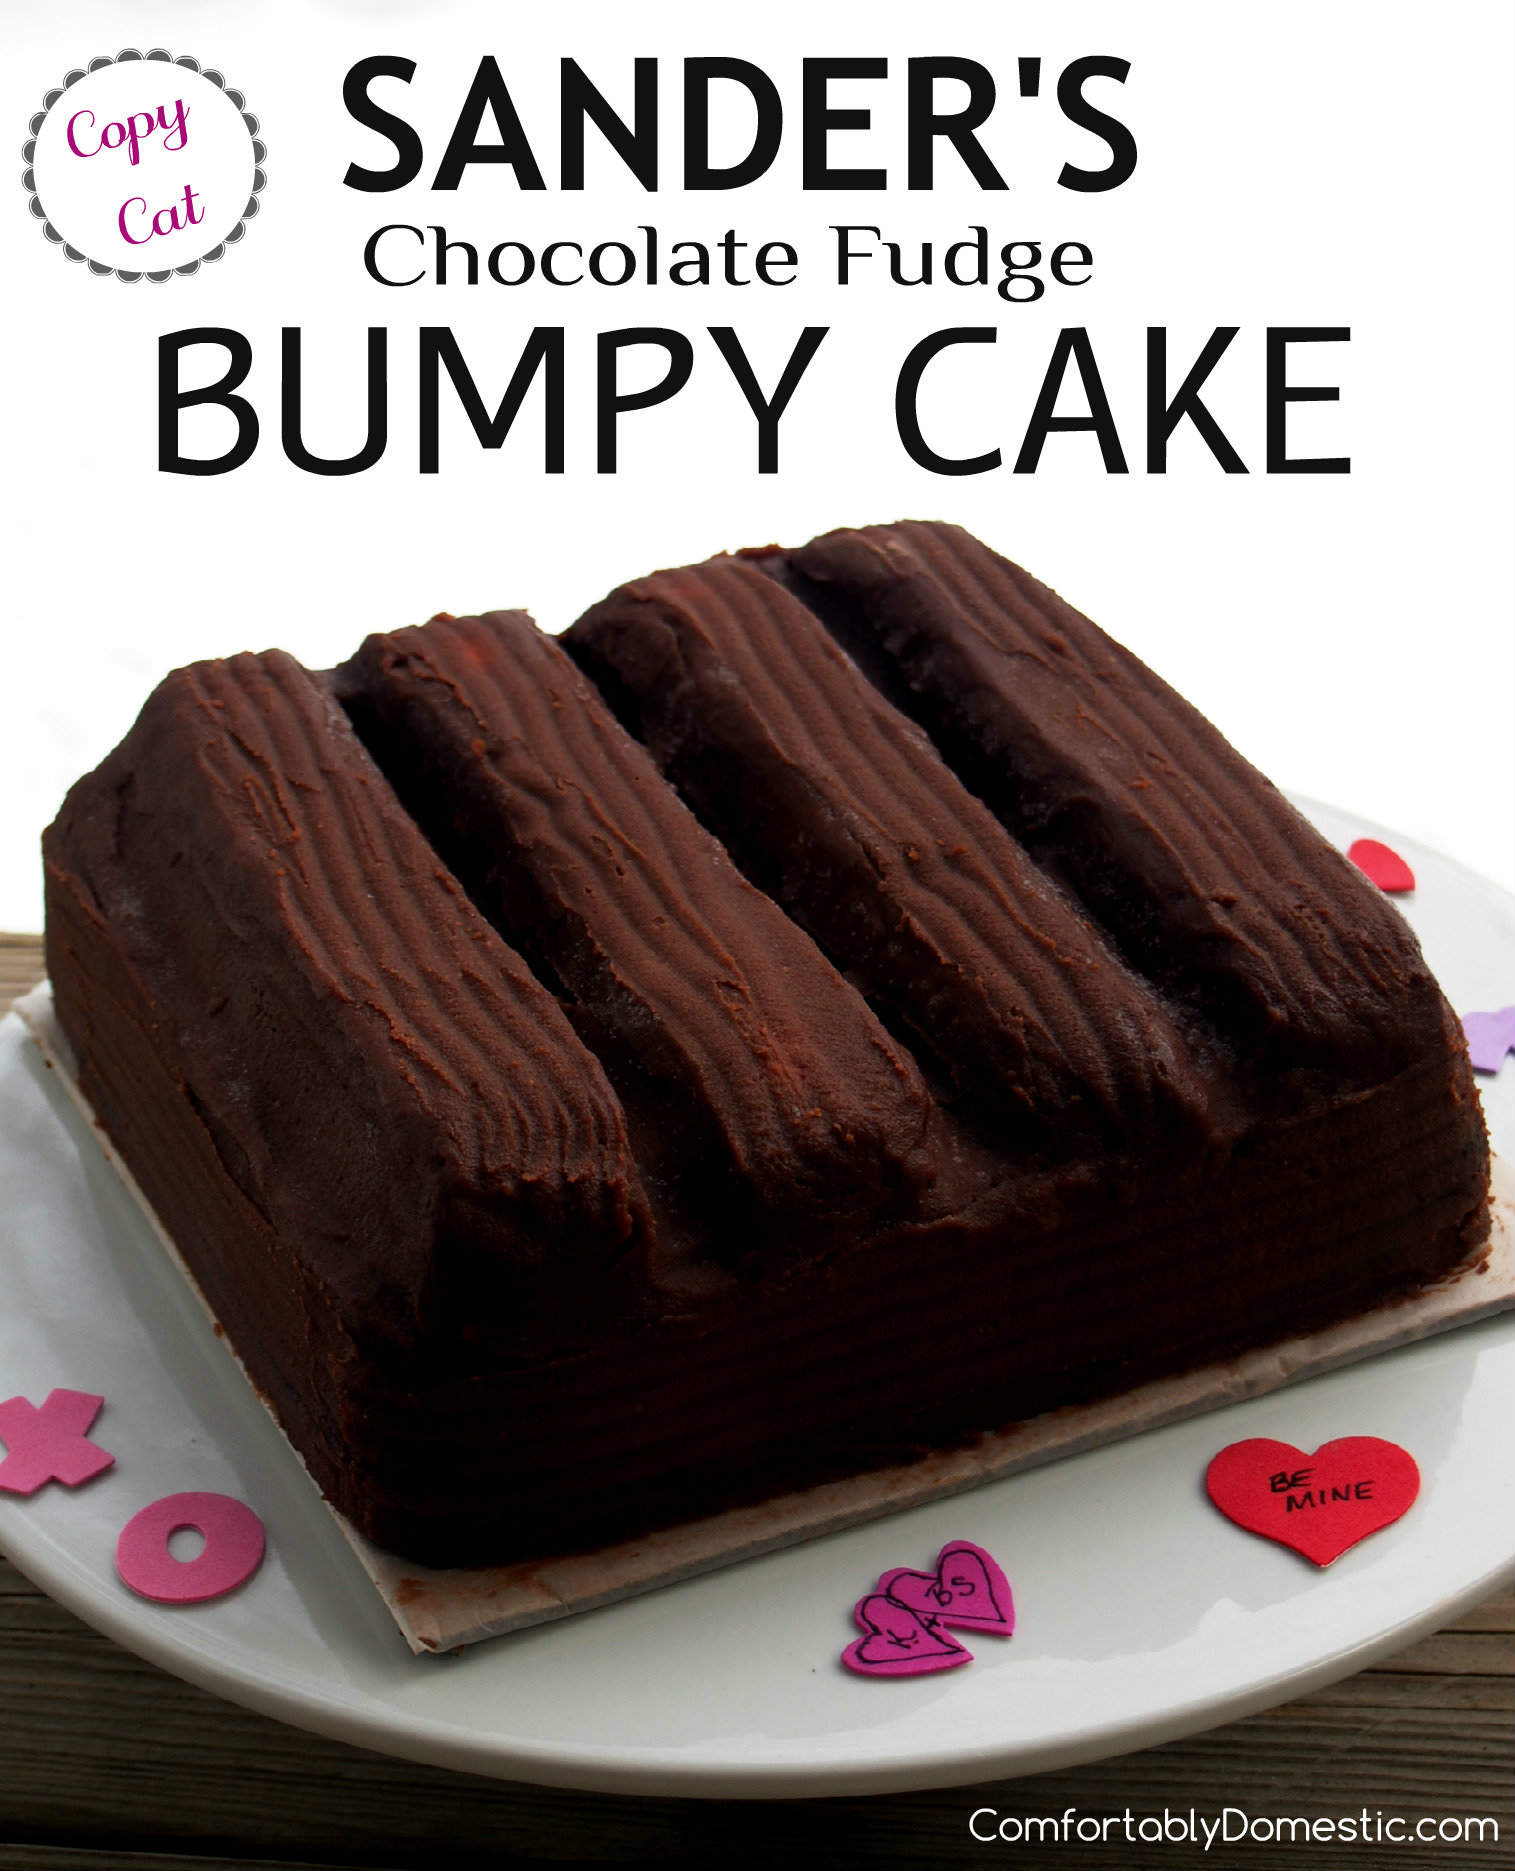 Chocolate Fudge Bumpy Cake is deliciously soft buttermilk chocolate cake, topped with cream filling and coated in pourable fudge. A homemade copycat recipe of the iconic Sander's Bumpy Cake, originally made in Detroit. | ComfortablyDomestic.com